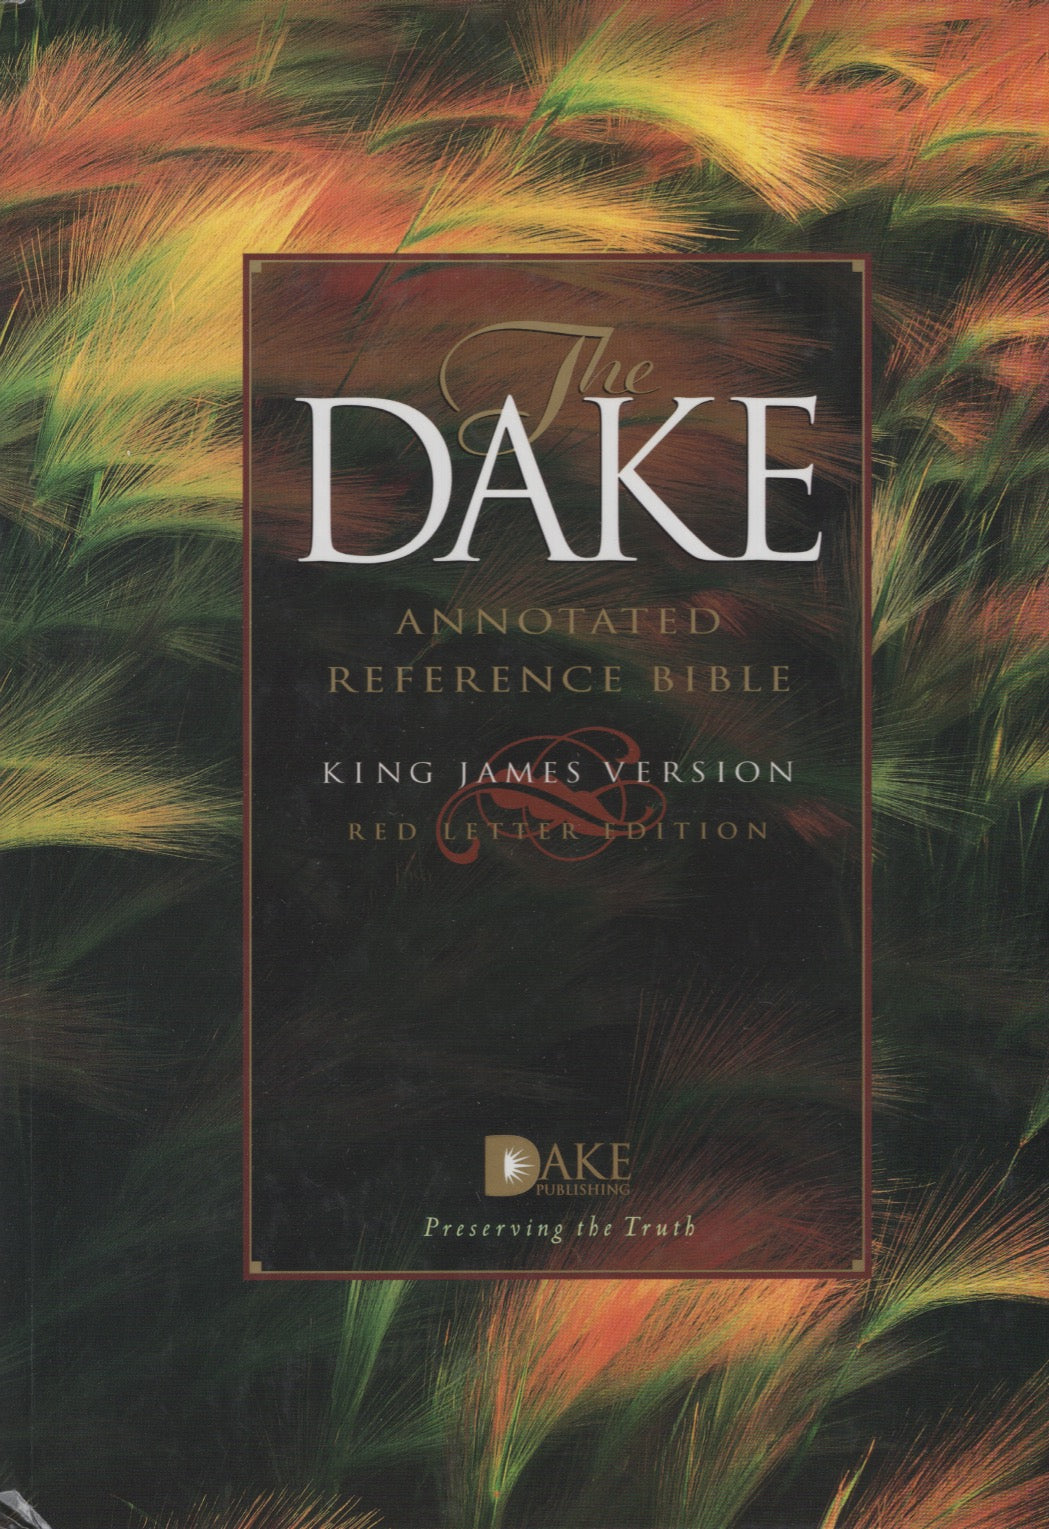 The Dake Annotated Reference Bible (KJV, red letter edition) by Finnis Jennings Dake